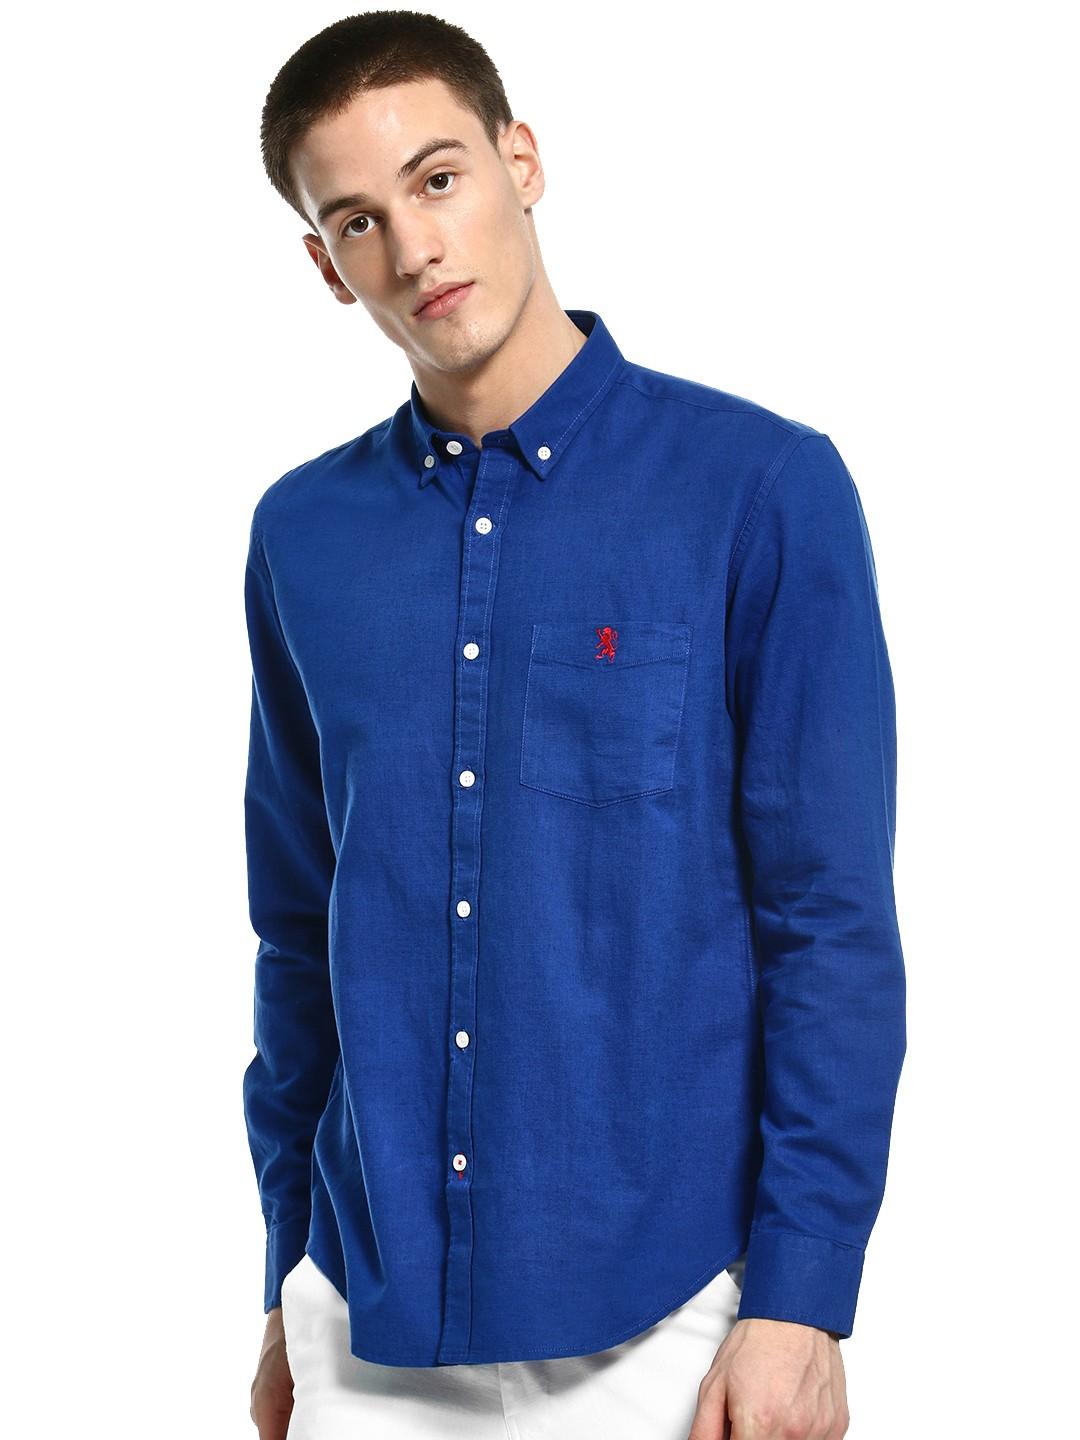 Giordano Blue Linen Blend Long Sleeve Shirt 1